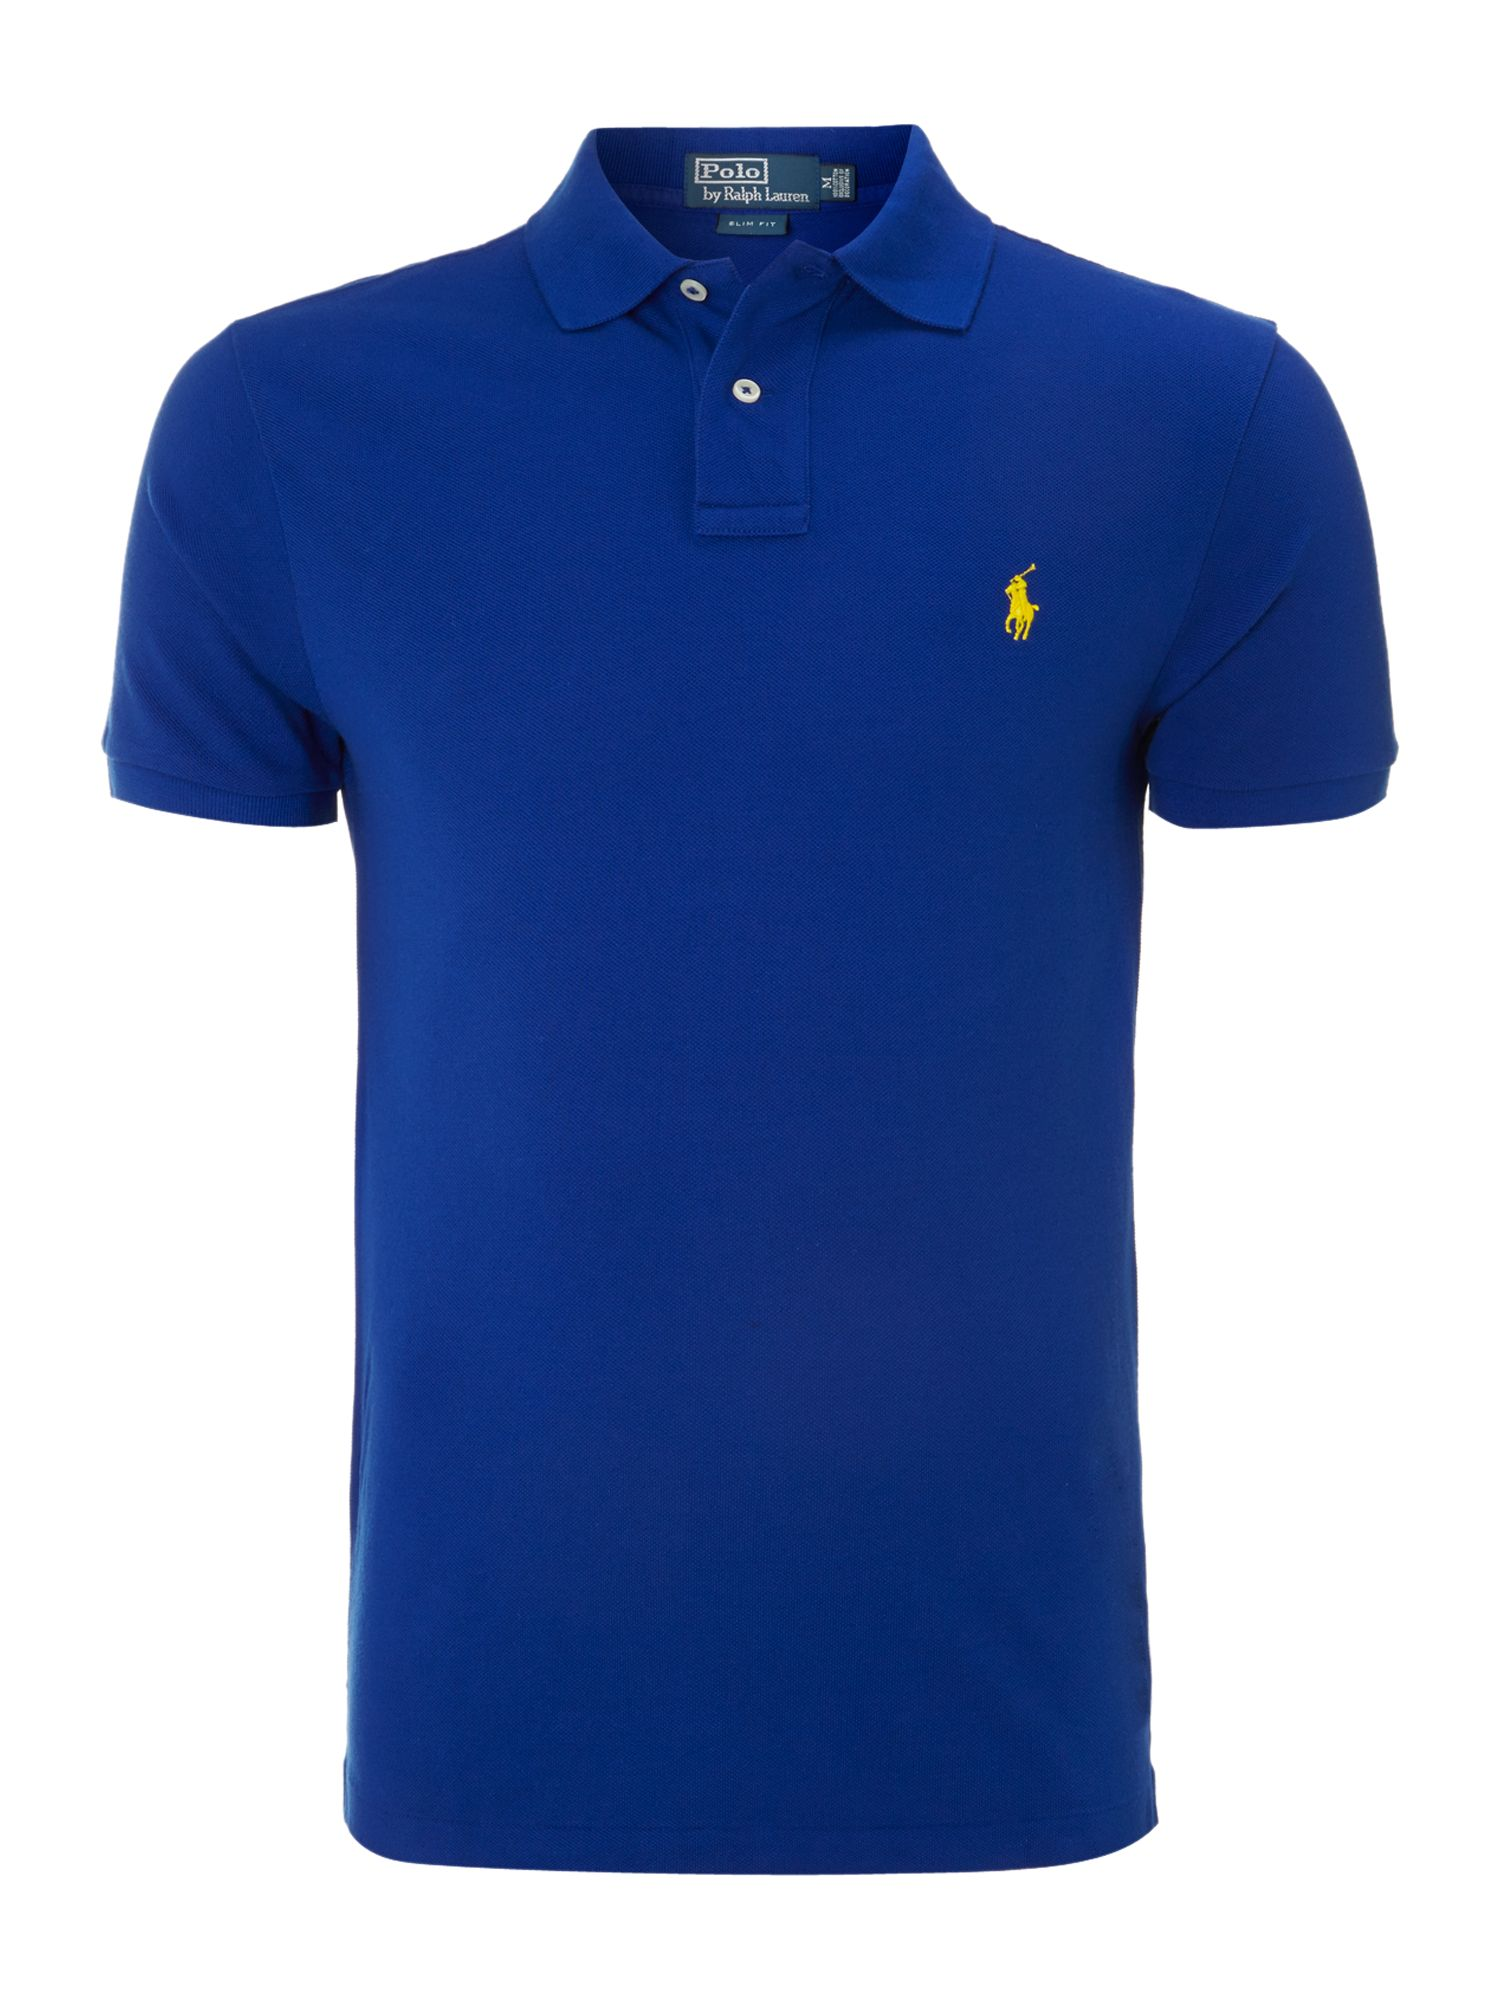 polo ralph lauren classic slim fit polo in blue for men royal blue. Black Bedroom Furniture Sets. Home Design Ideas